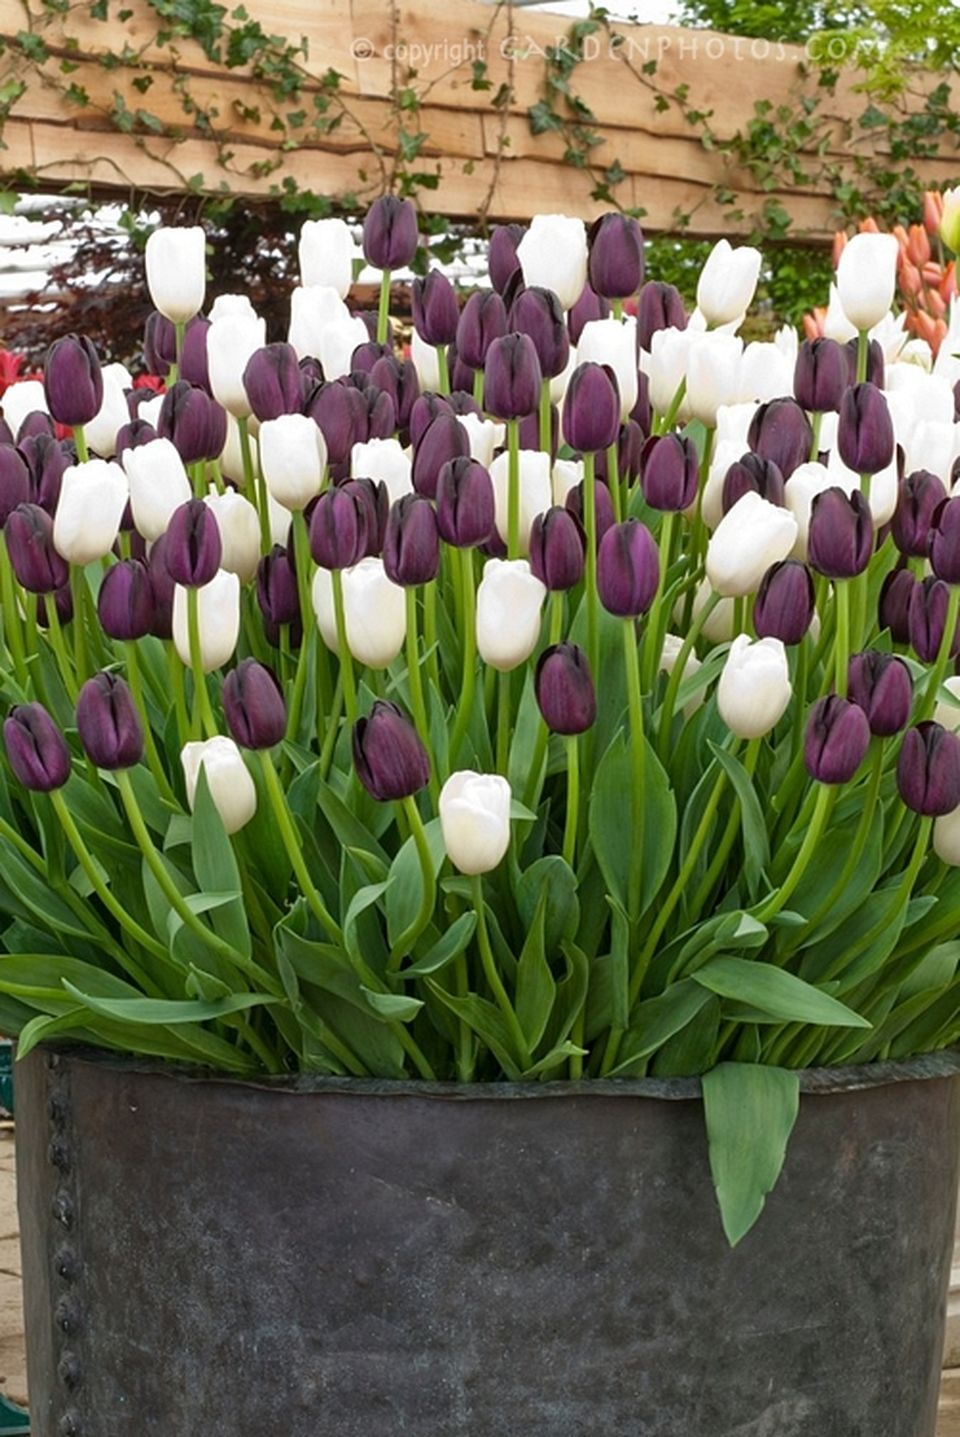 25 Beauty Tulips Arrangement Tips For Your Home Garden Tulips Arrangement Planting Flowers Beautiful Flowers